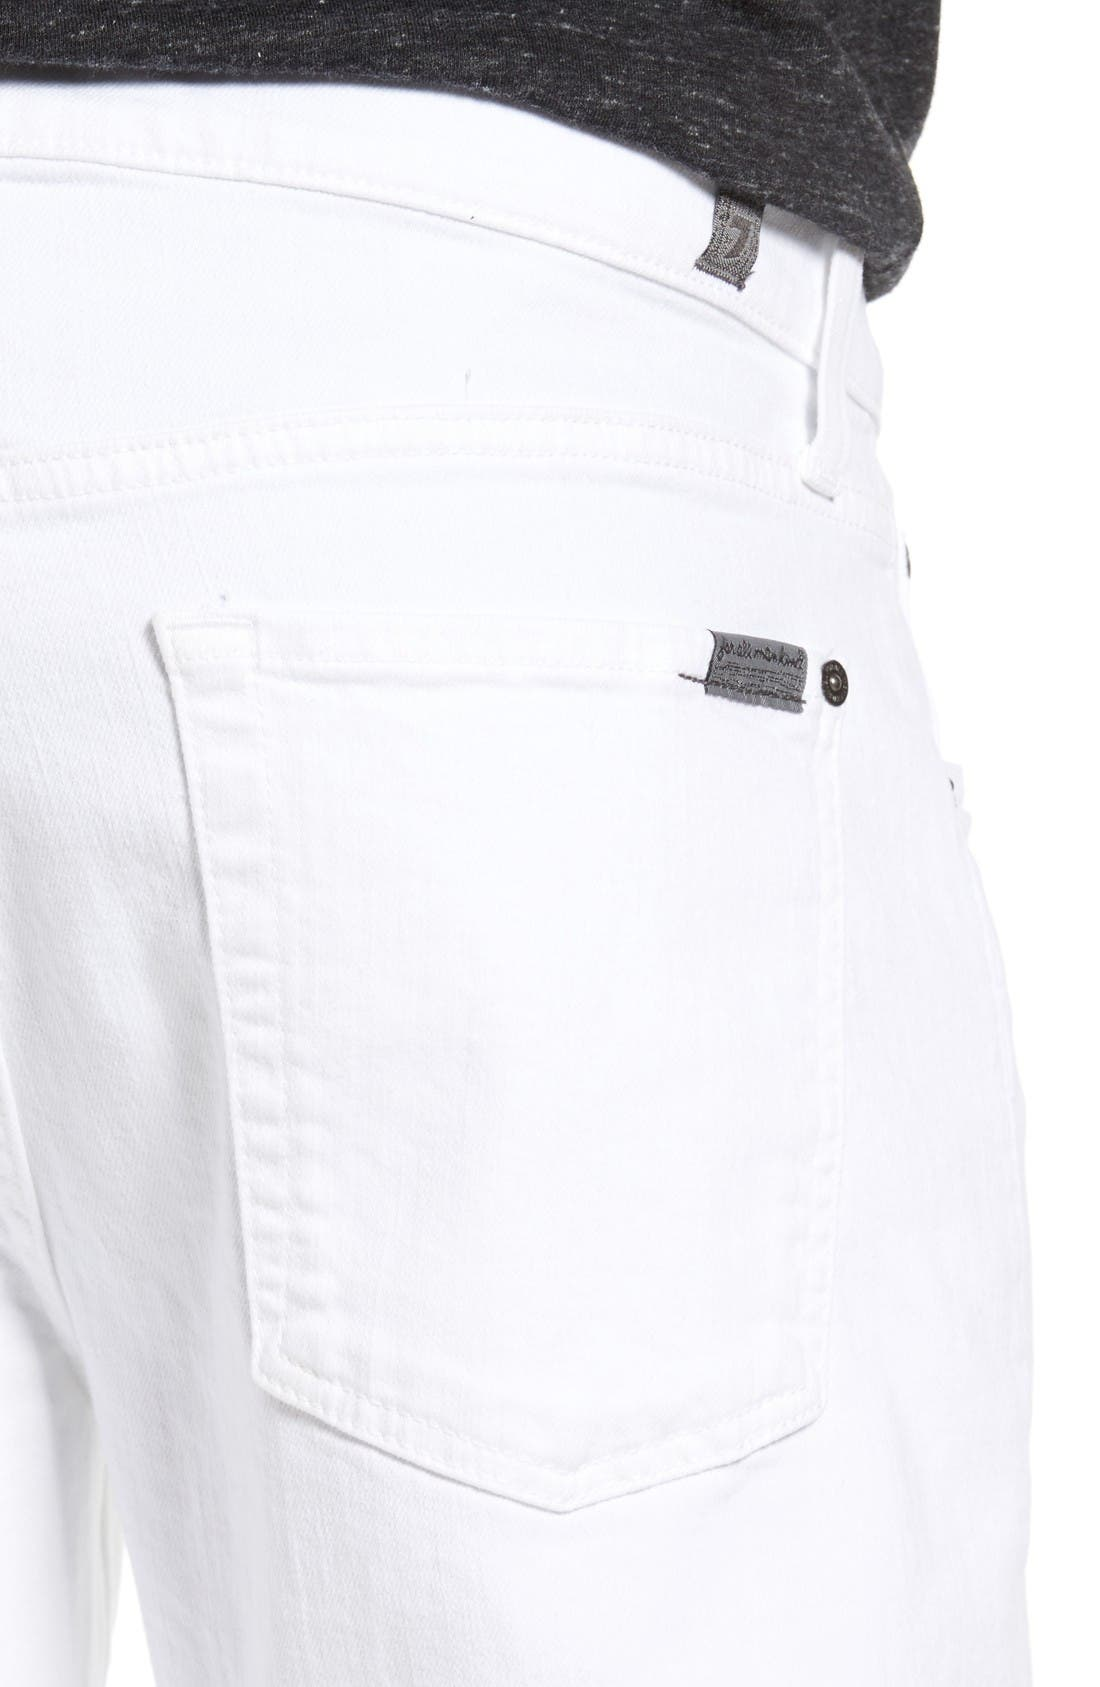 Luxe Performance - Slimmy Slim Fit Jeans,                             Alternate thumbnail 4, color,                             White